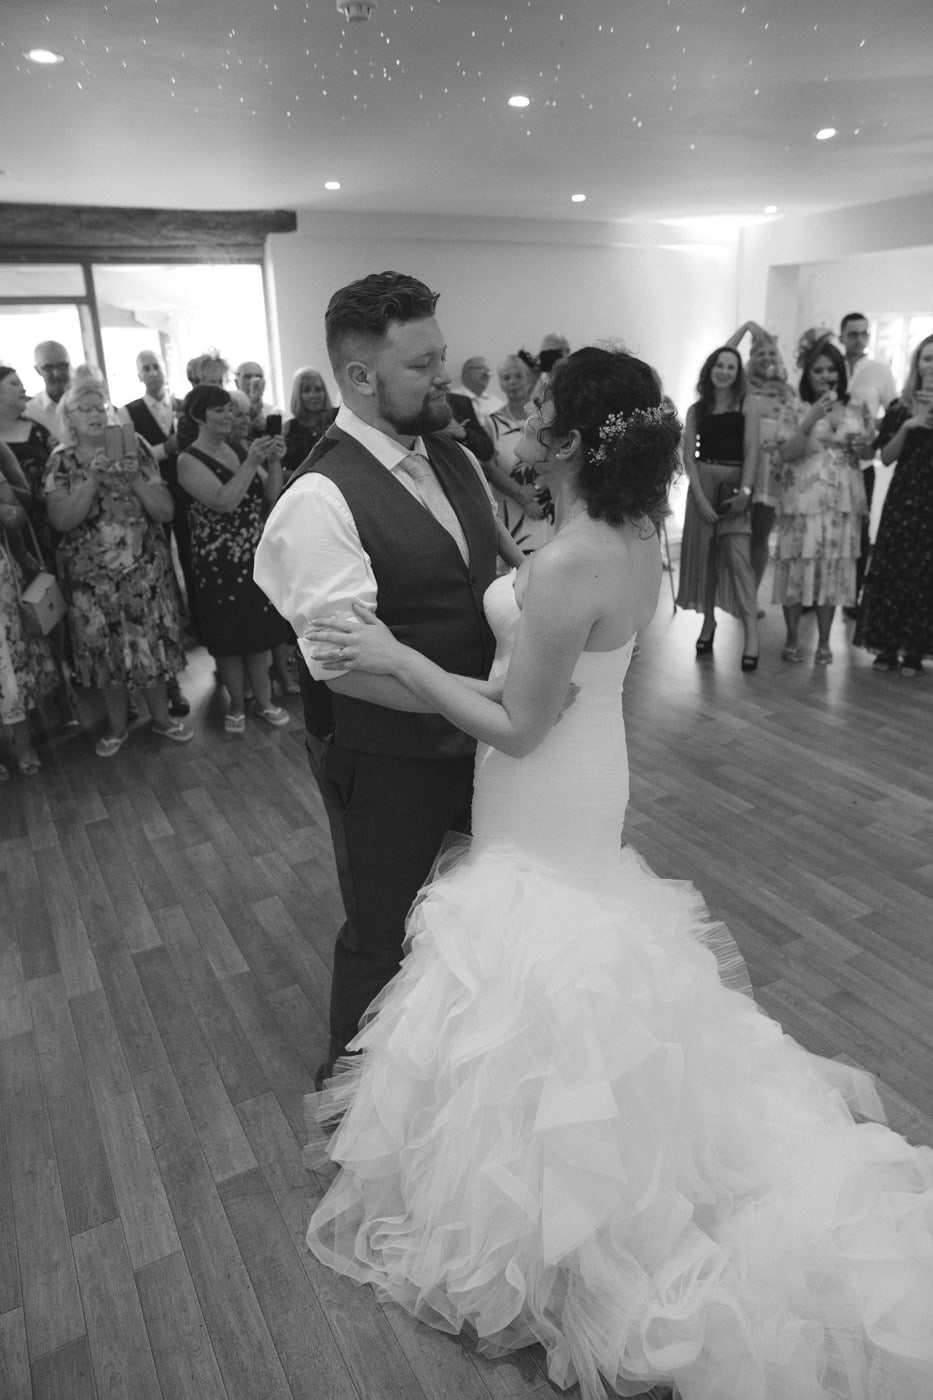 Bride and Groom Slow Dance on Main Hall Floor Photograph